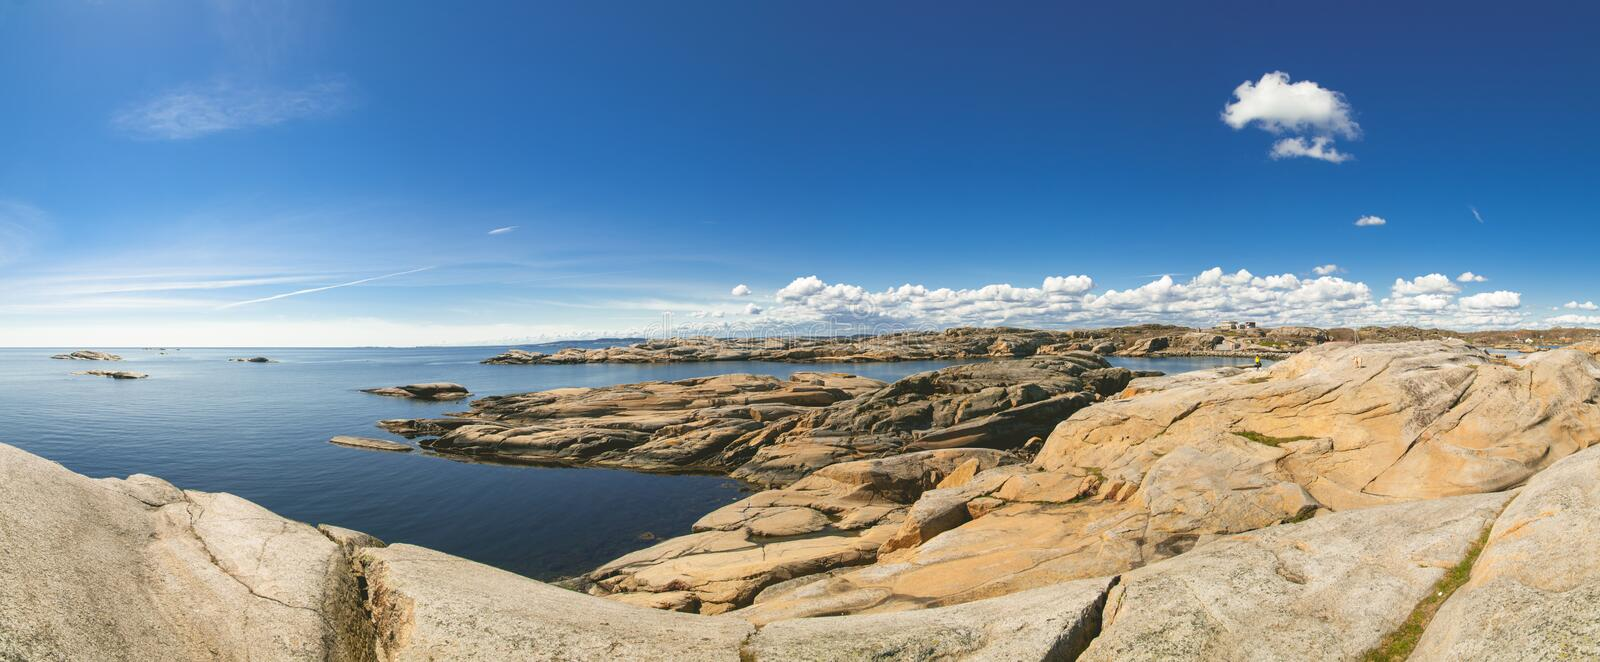 Panorama of Verdens End coast, Norway royalty free stock photo